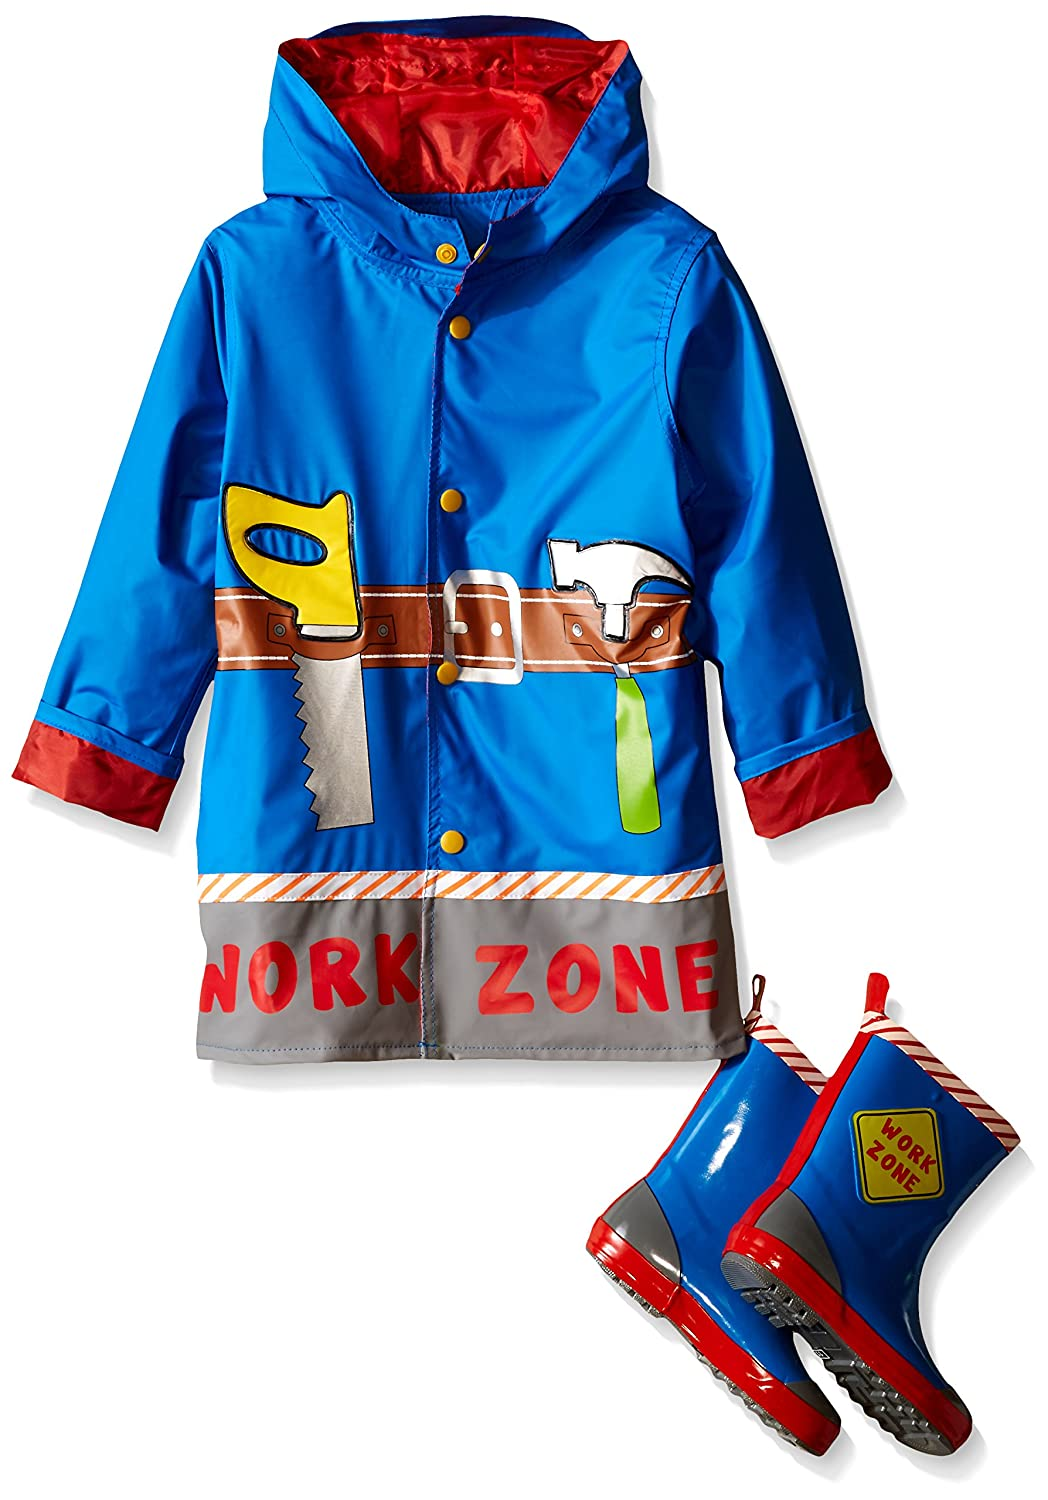 Wippette Boys' Work Zone Rain Jacket and Boot Set Royal 4T 68037